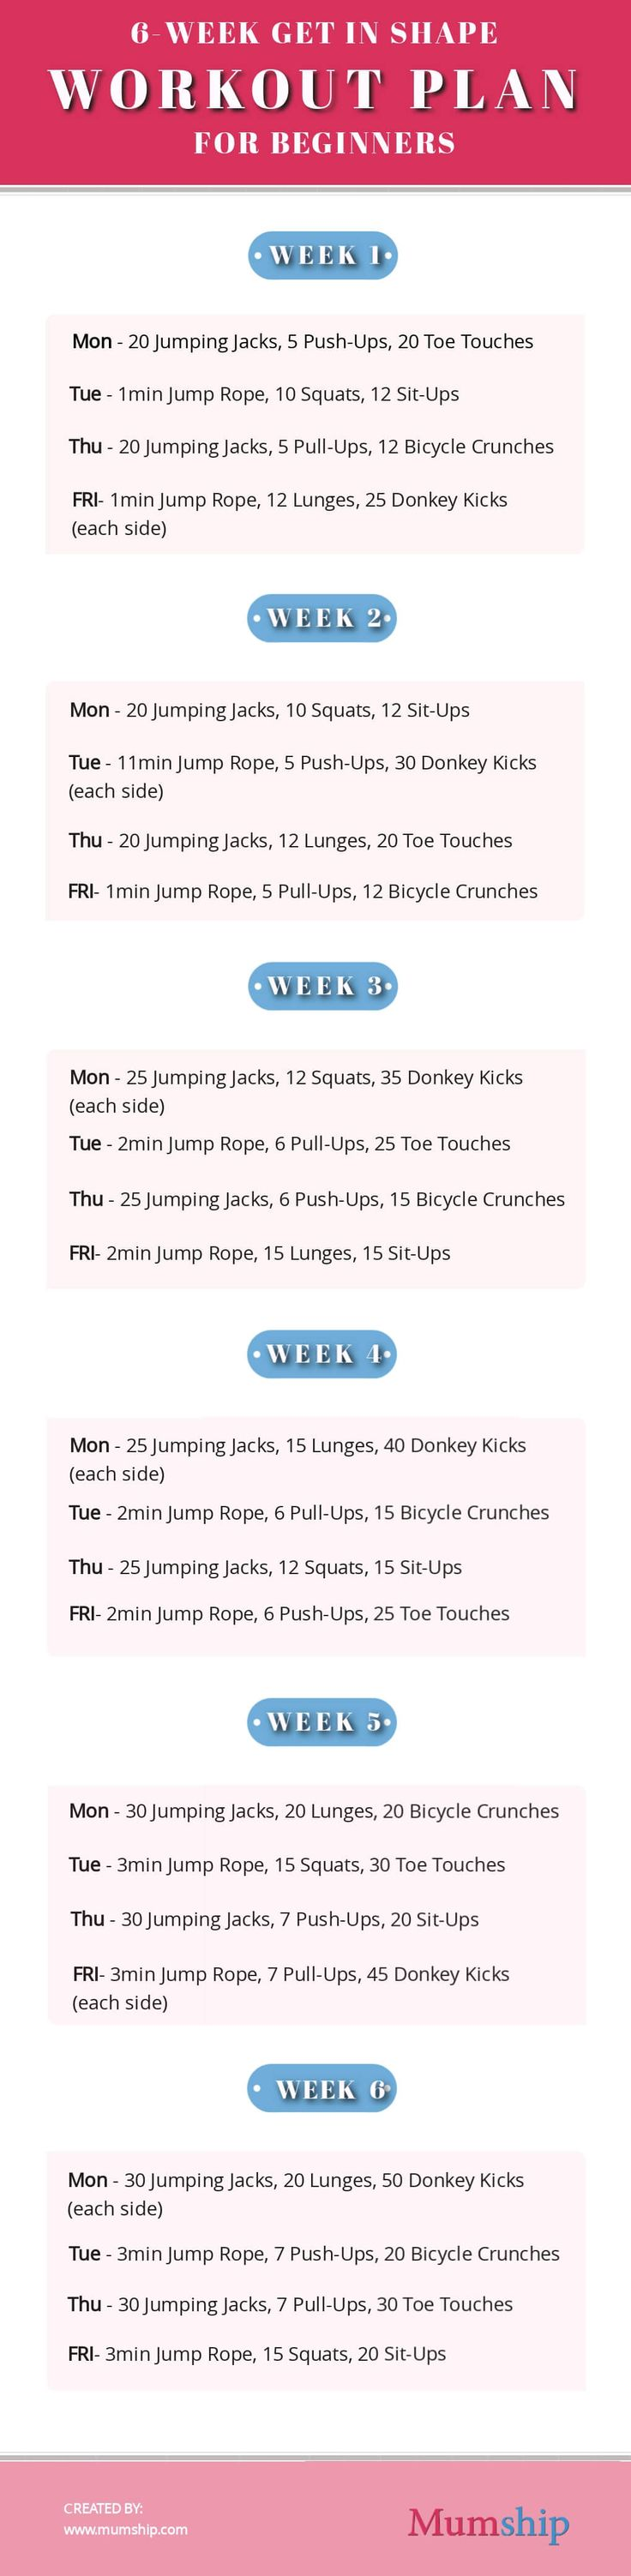 6-Week Get in Shape Workout Plan for Beginners – Fitness and Exercise